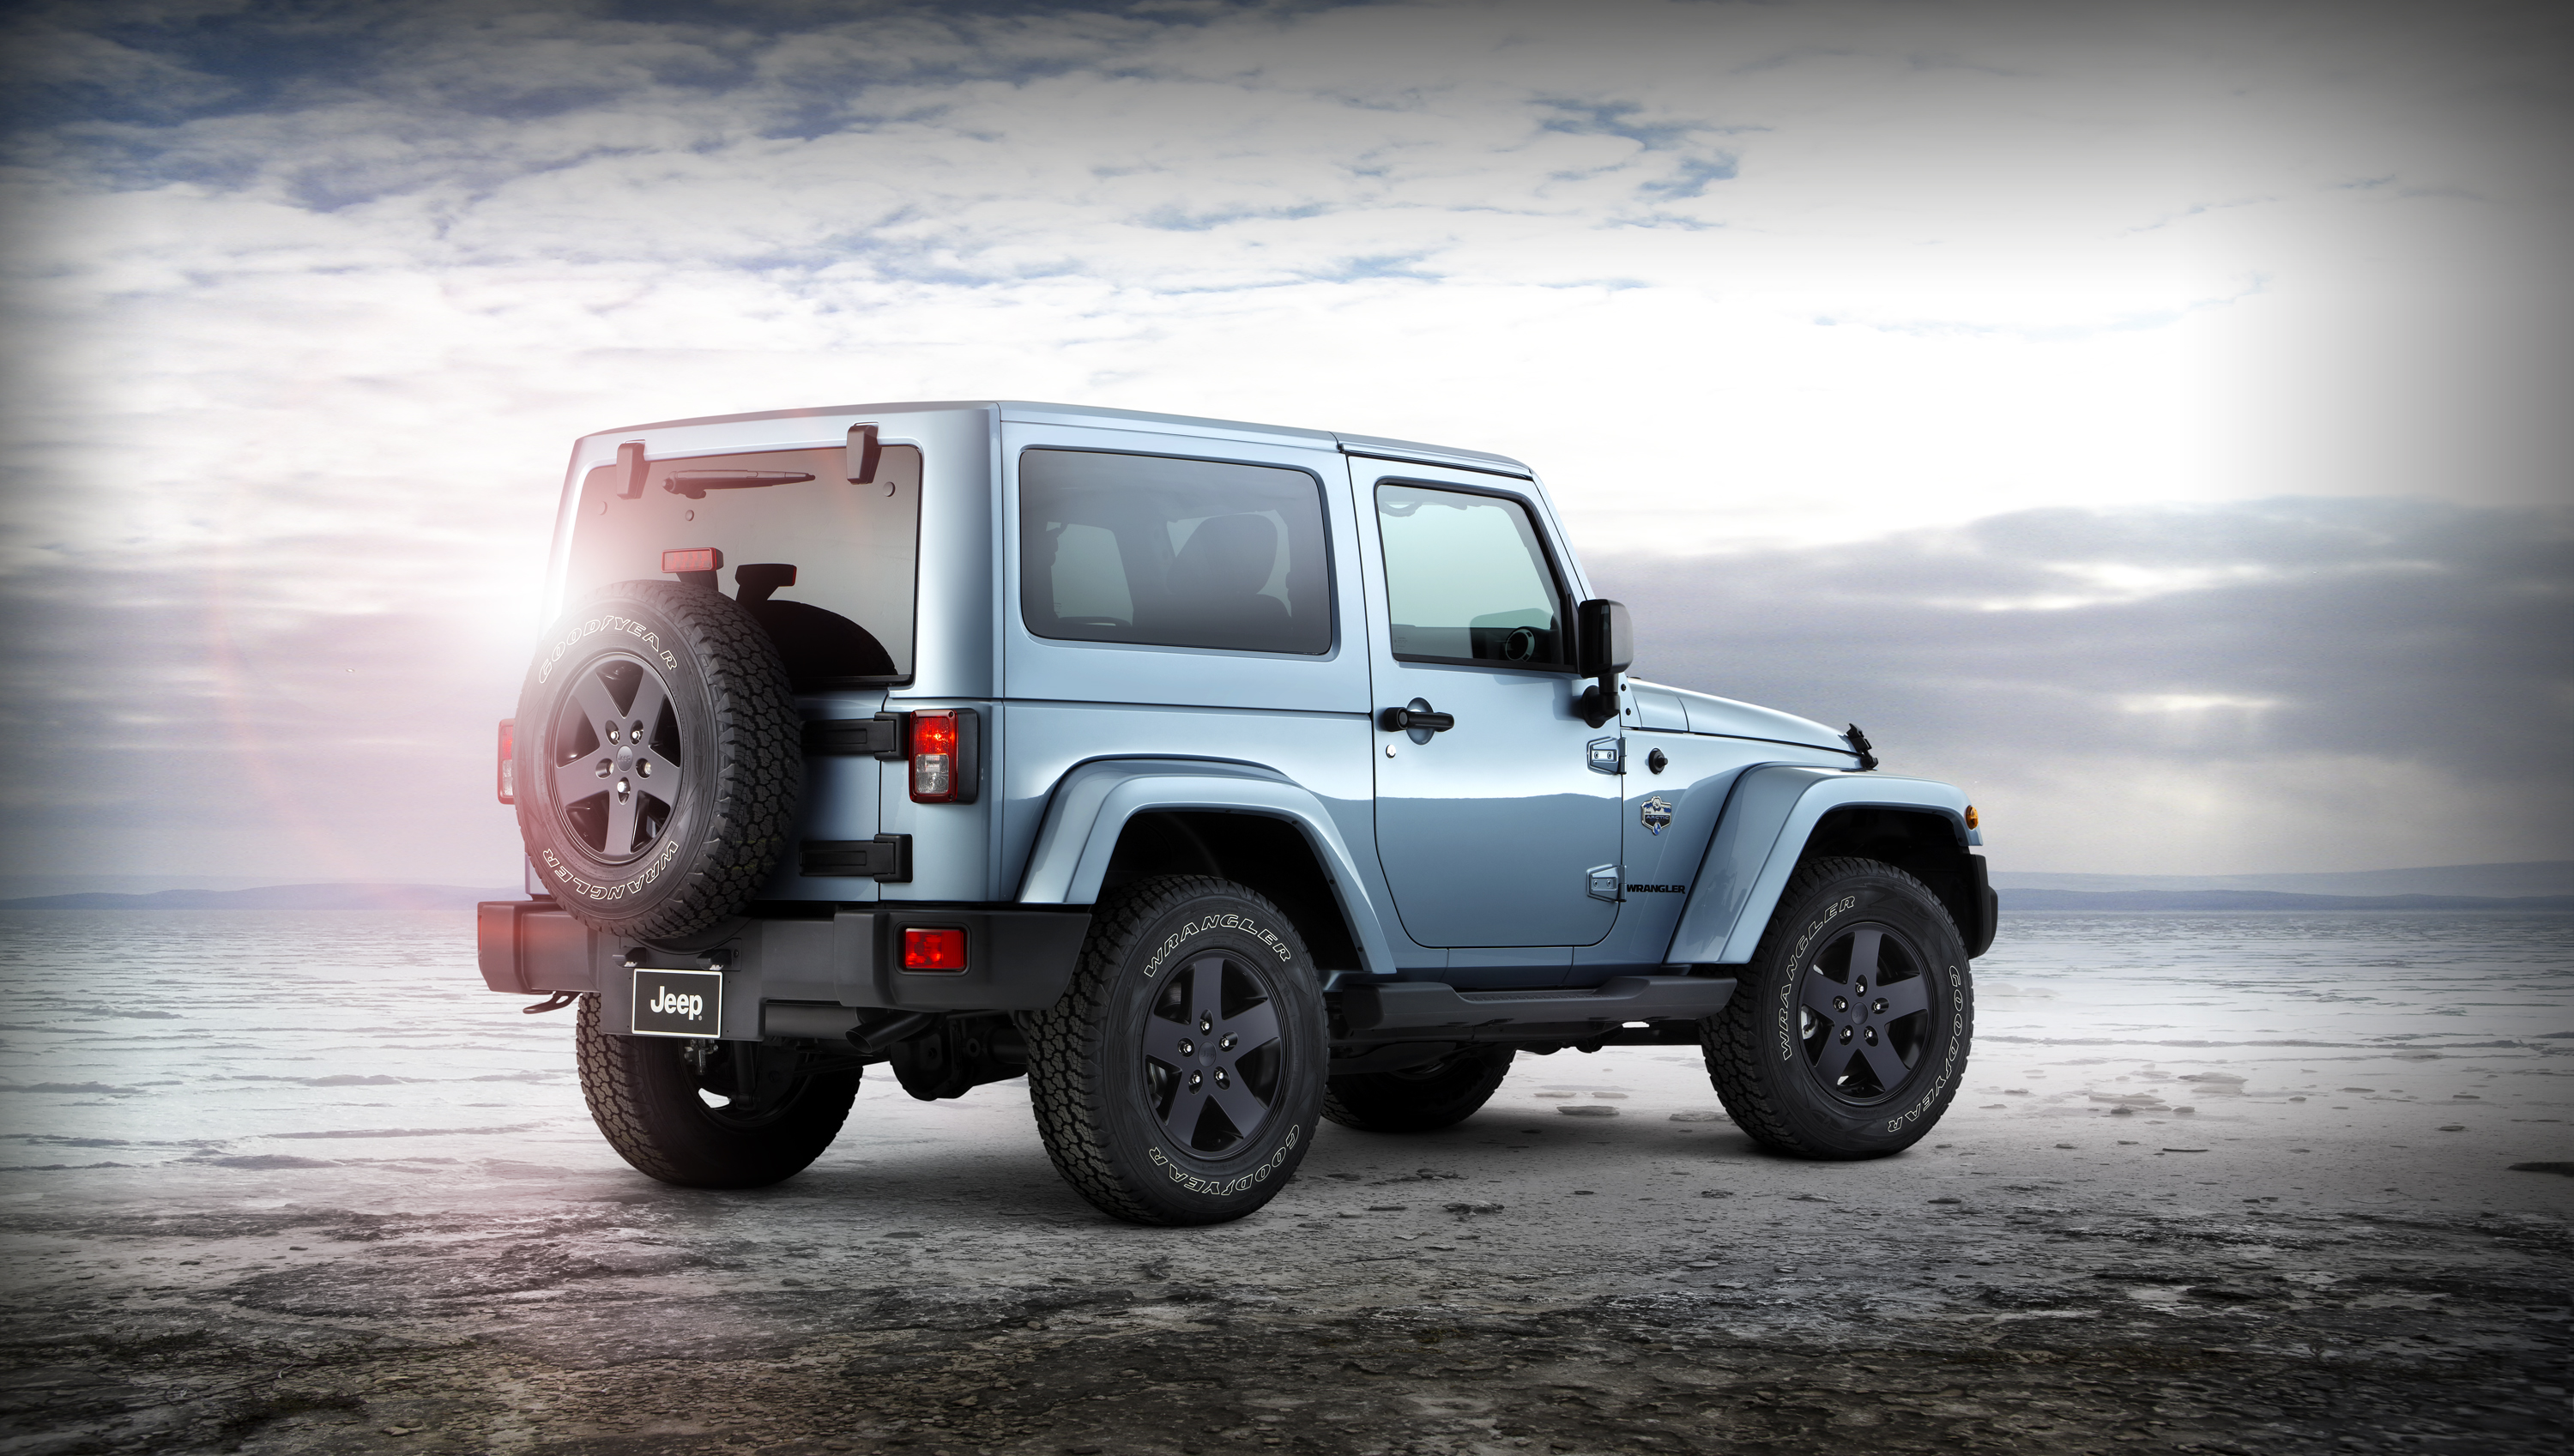 jeep wrangler arctic une nouvelle s rie sp ciale. Black Bedroom Furniture Sets. Home Design Ideas